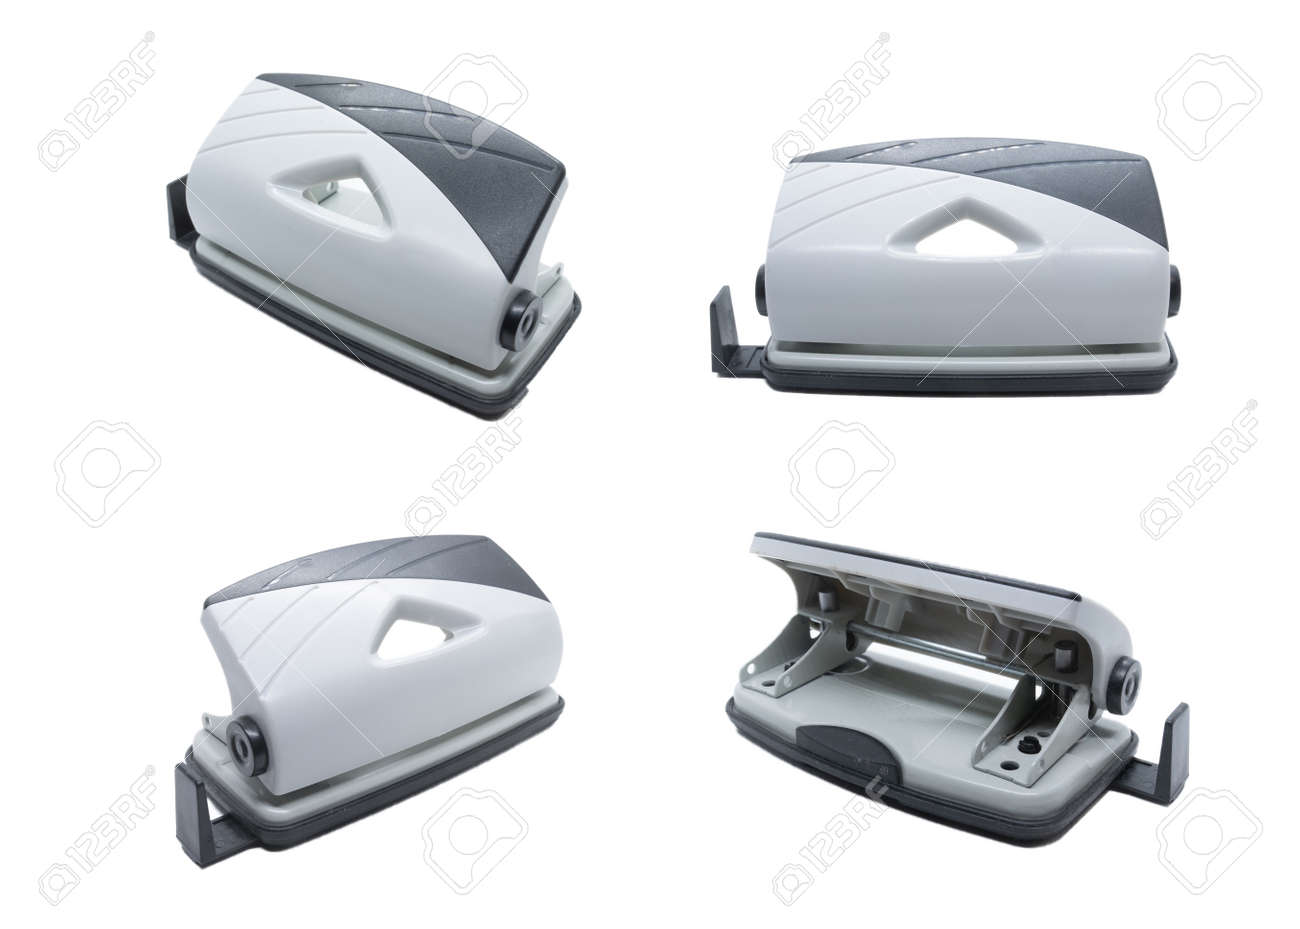 Grey Desktop Hole Punch isolated on white background. Front view, rear view, 45 degree angle view. - 132225795